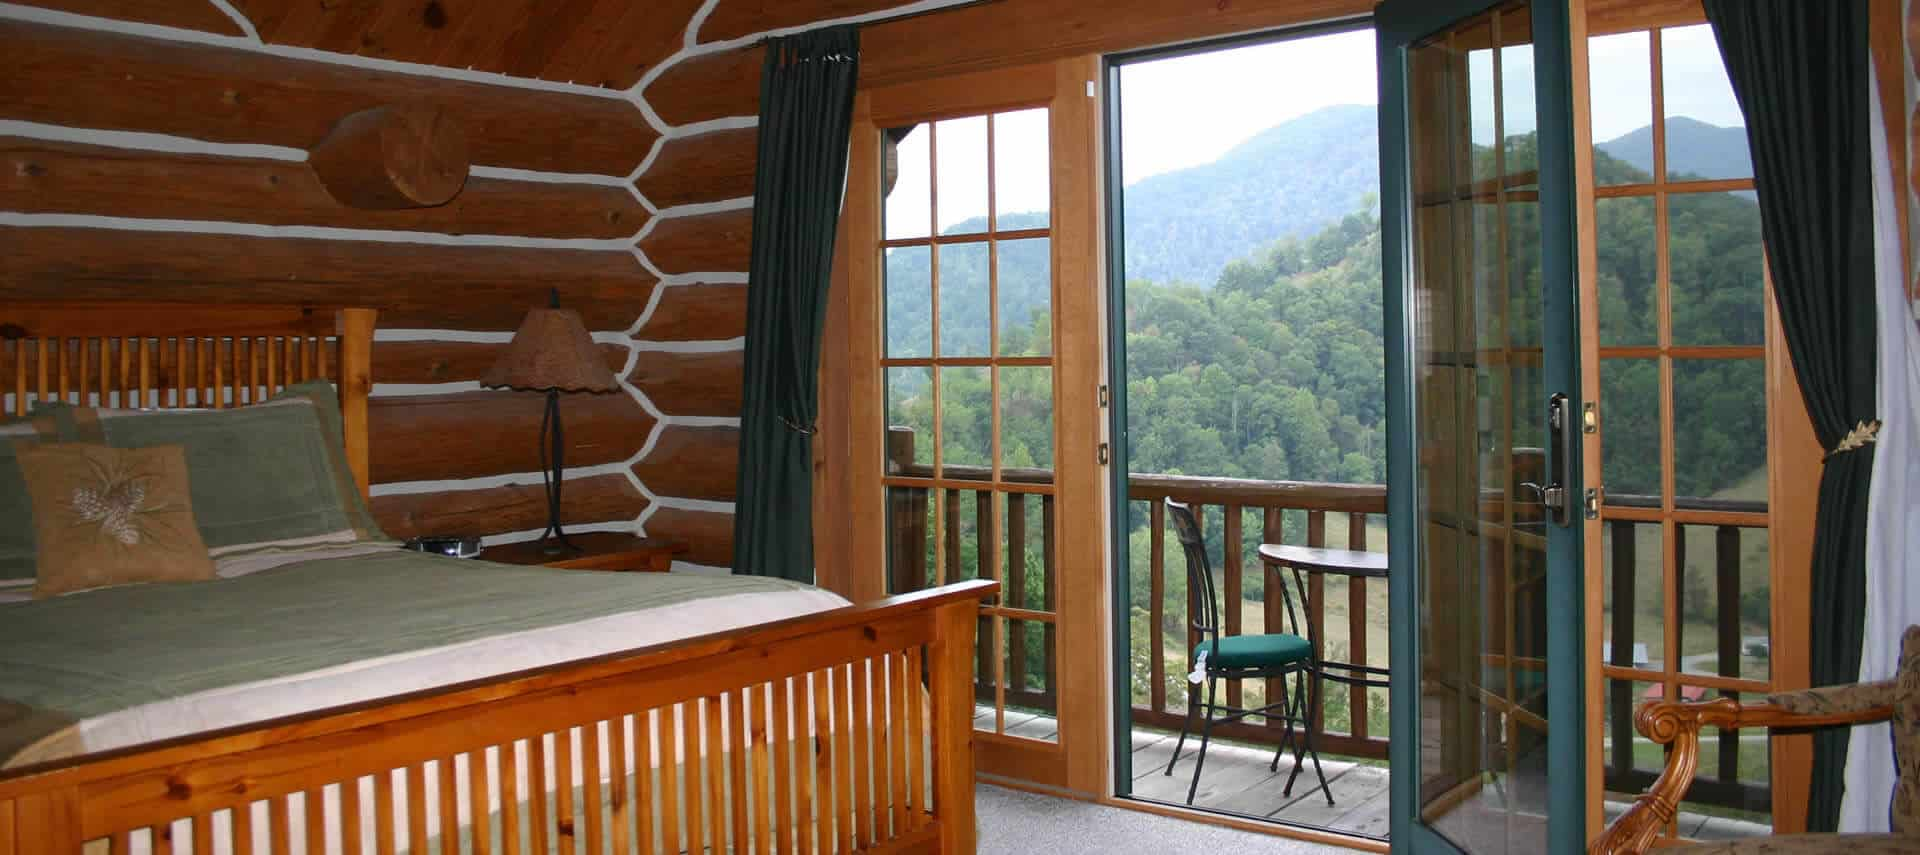 log-cabi bedroom with bed next to private balcony overlooking wooded hills.